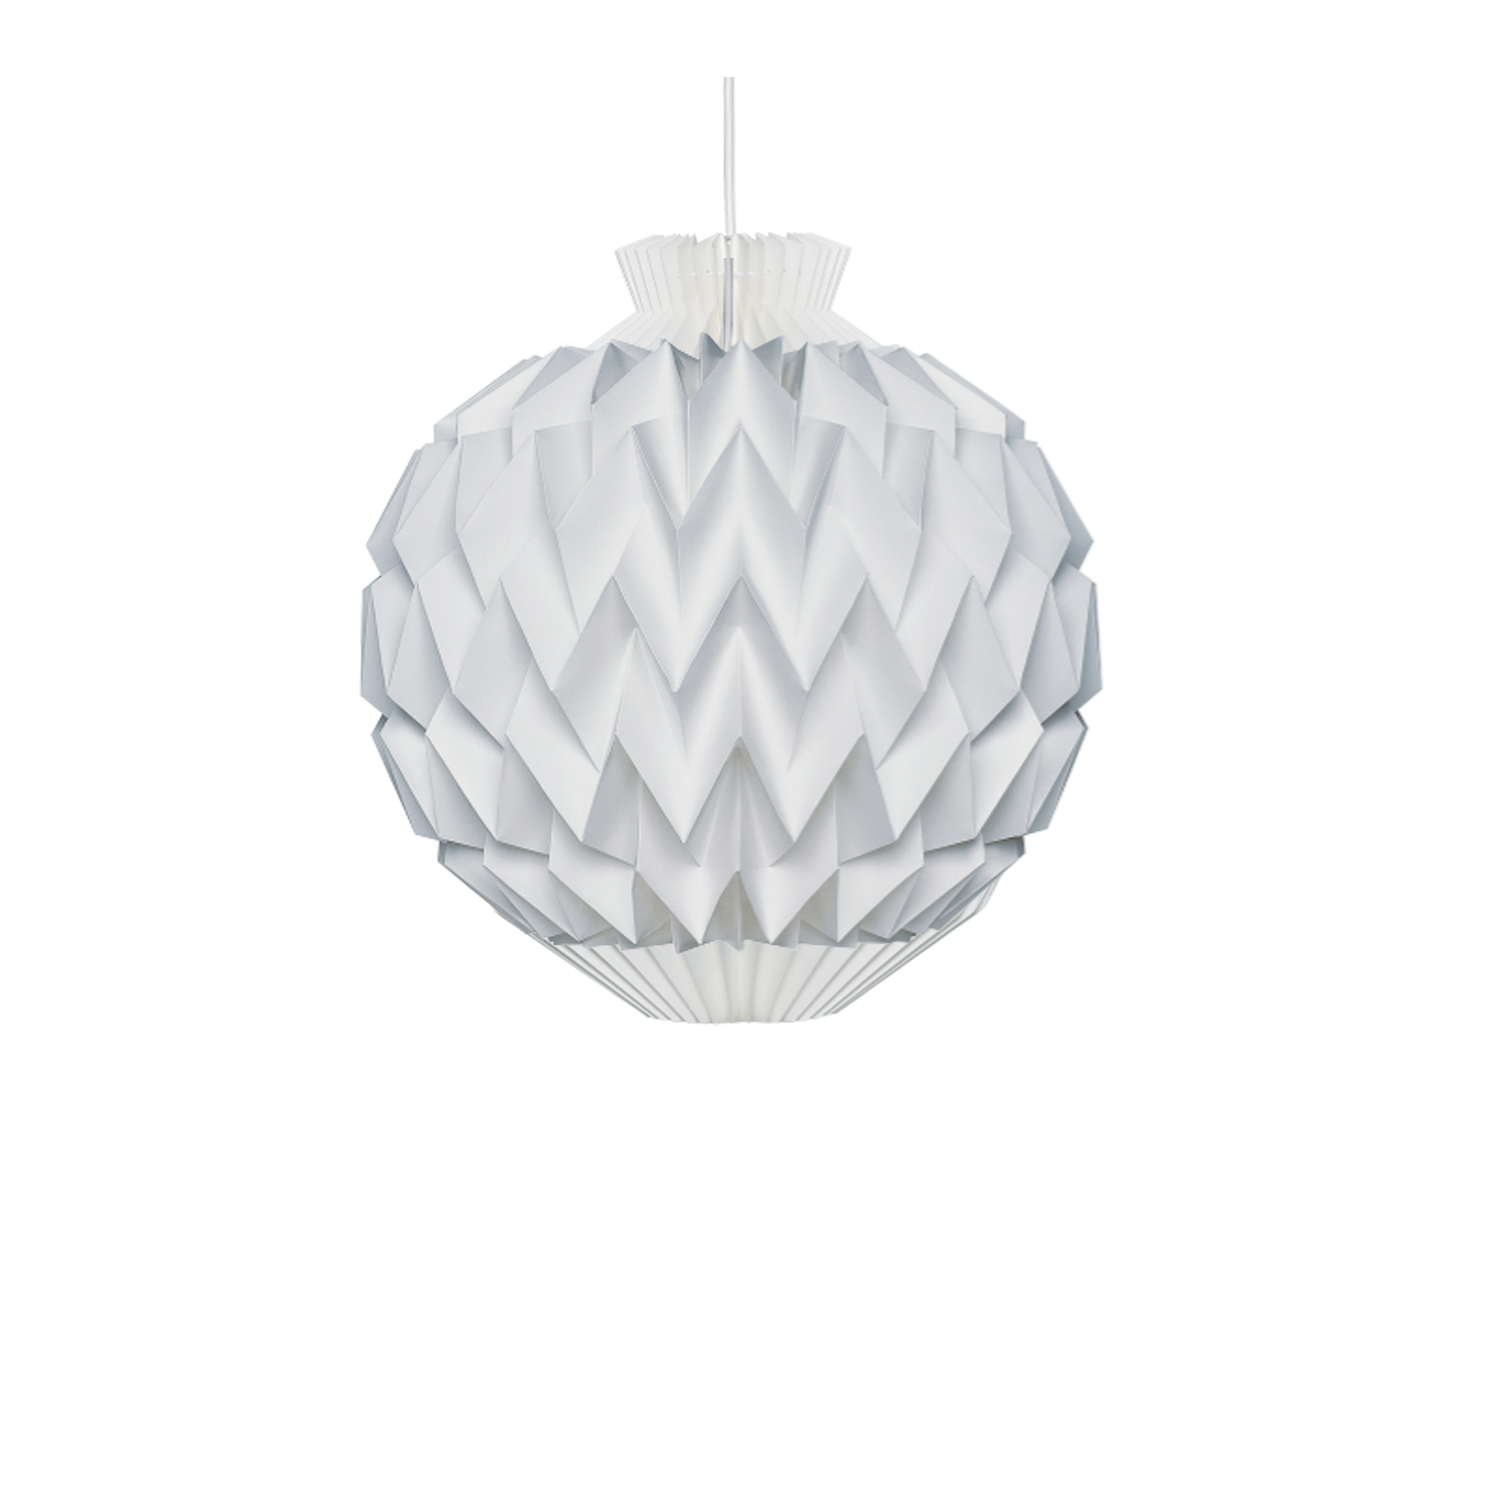 Model 153 Pendant - Andreas Hansen created Model 153 in 1964. This multi-faceted lampshade's resemblance to a natural pine cone is unmistakable.   The lamp's enclosed shape makes it appropriate lighting for hanging at high or low levels. | Matter of Stuff